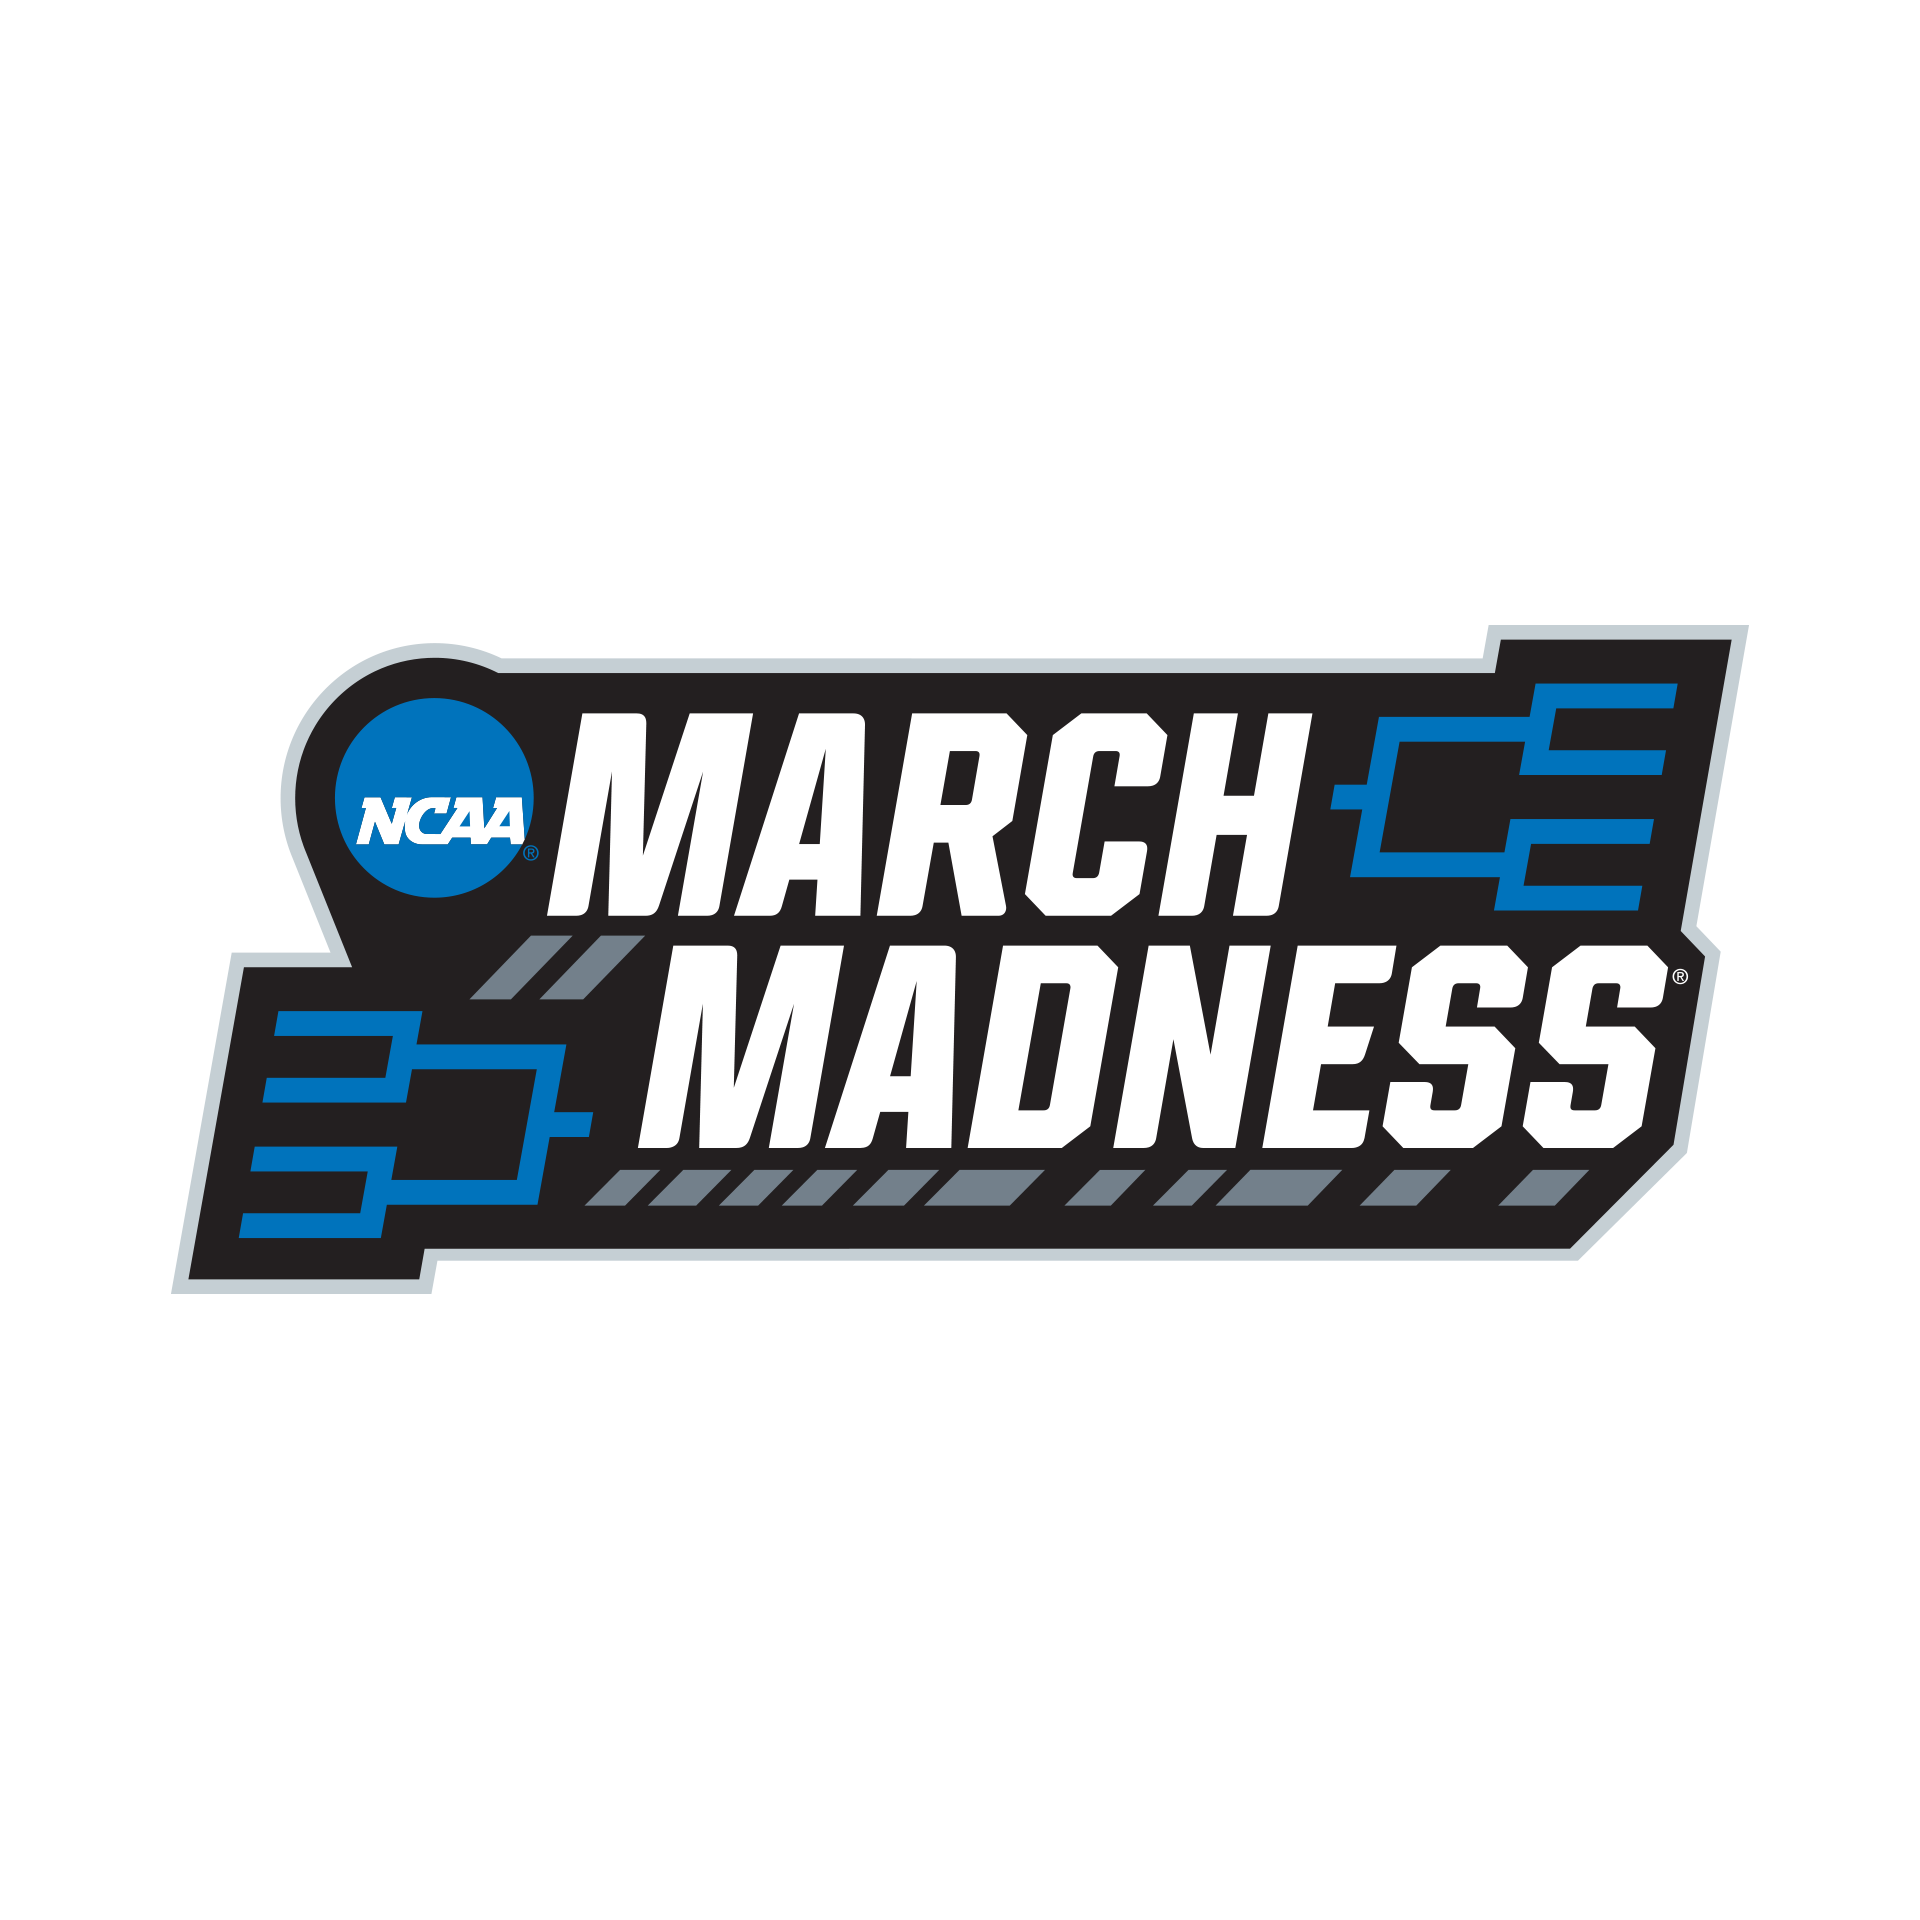 March madness GIFs.